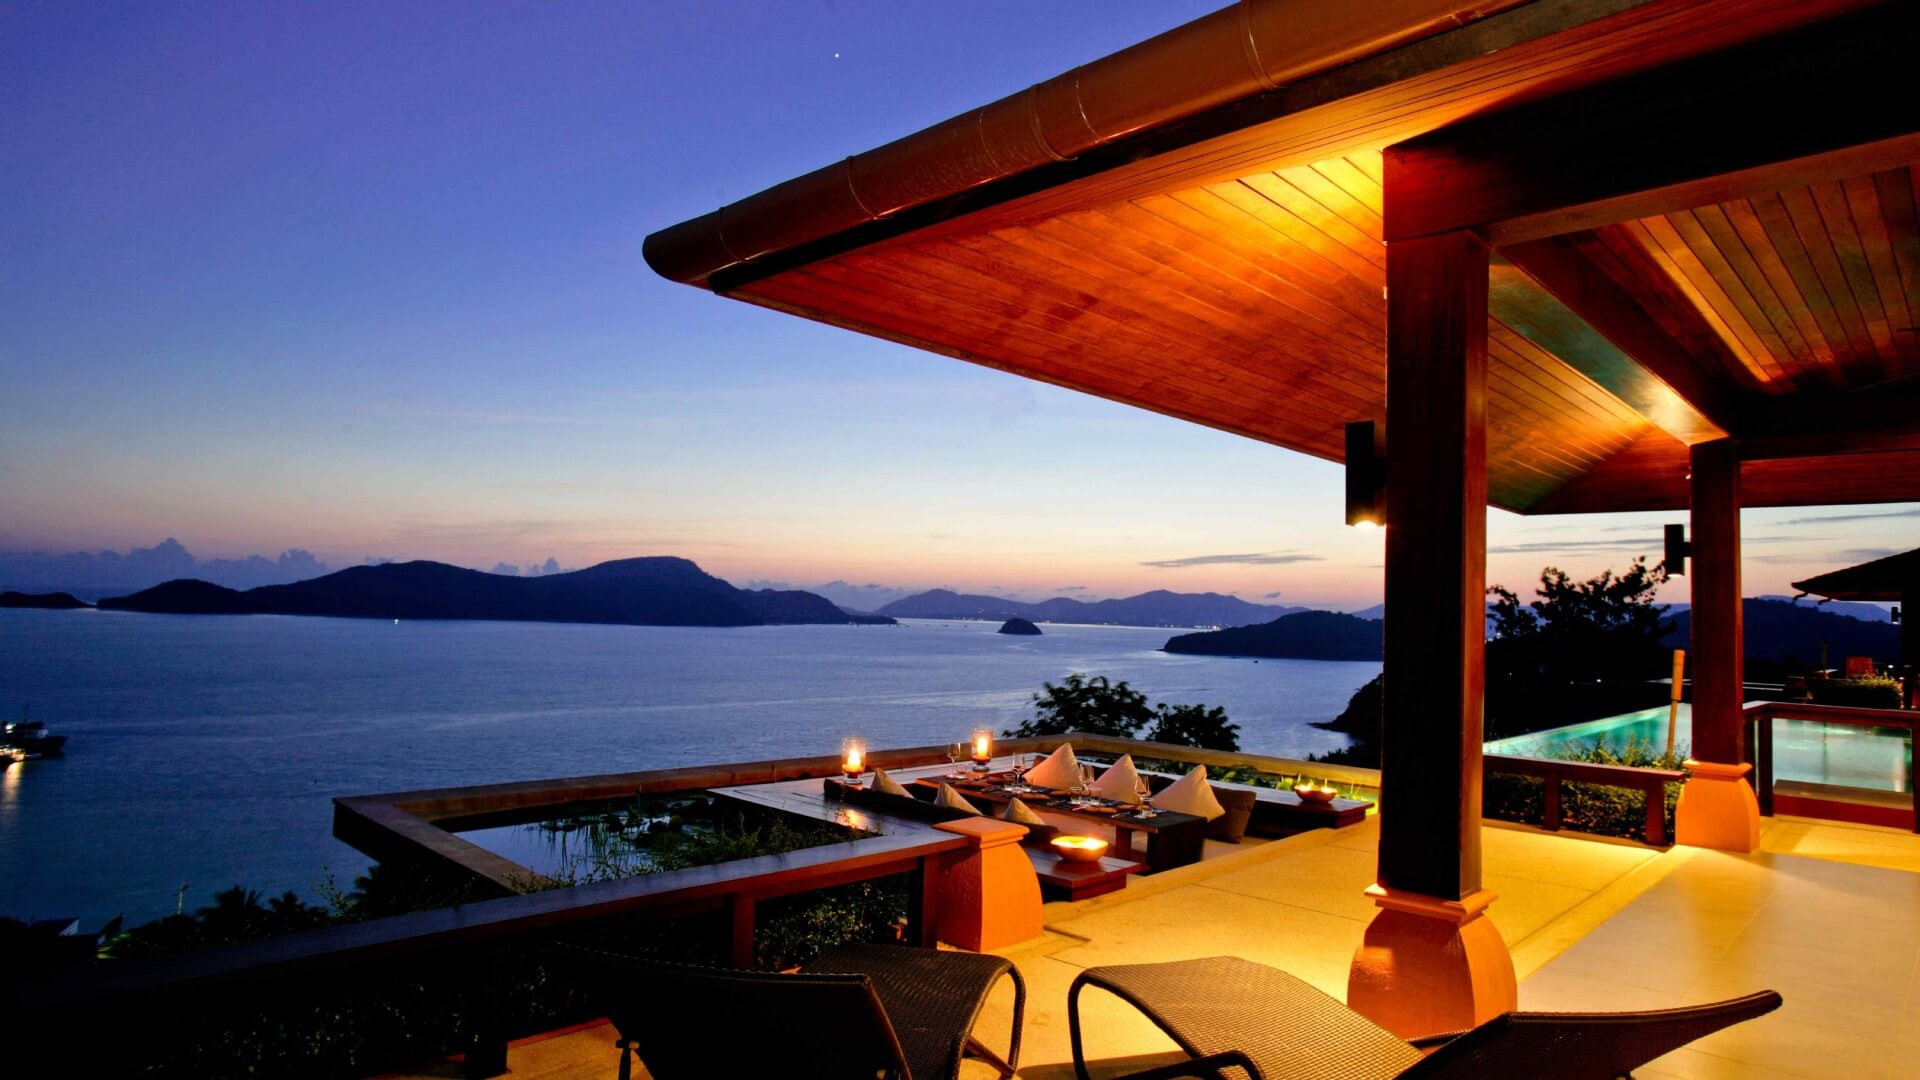 02-Sri-Panwa-Phuket-Luxury-Hotel-With-Private-Pool